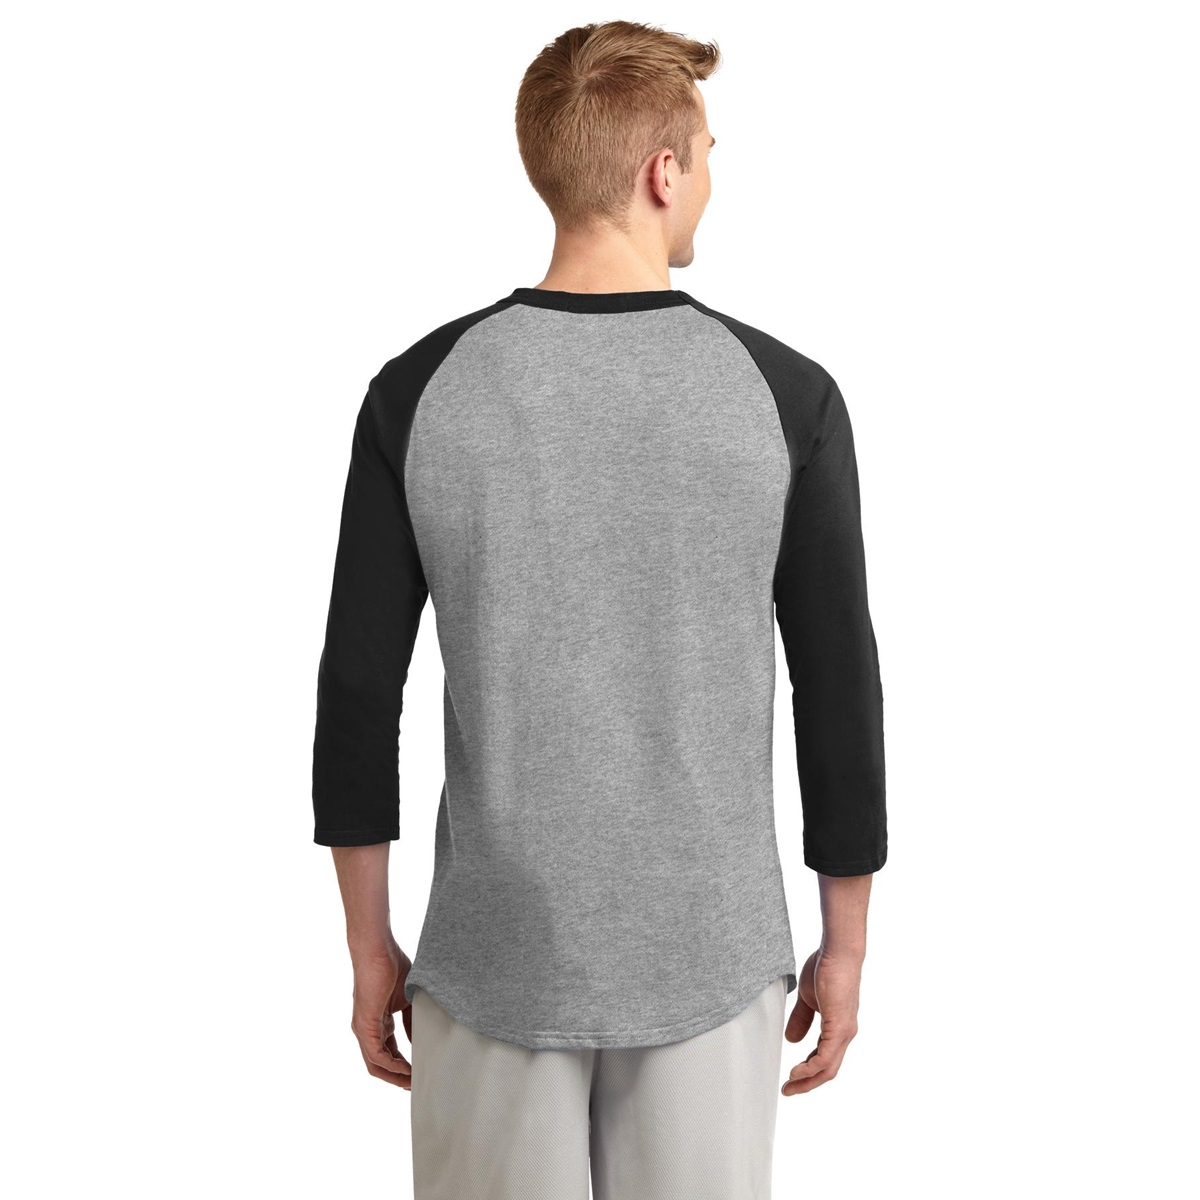 Sport-Tek T200 Colorblock Raglan Jersey - Heather Grey ...